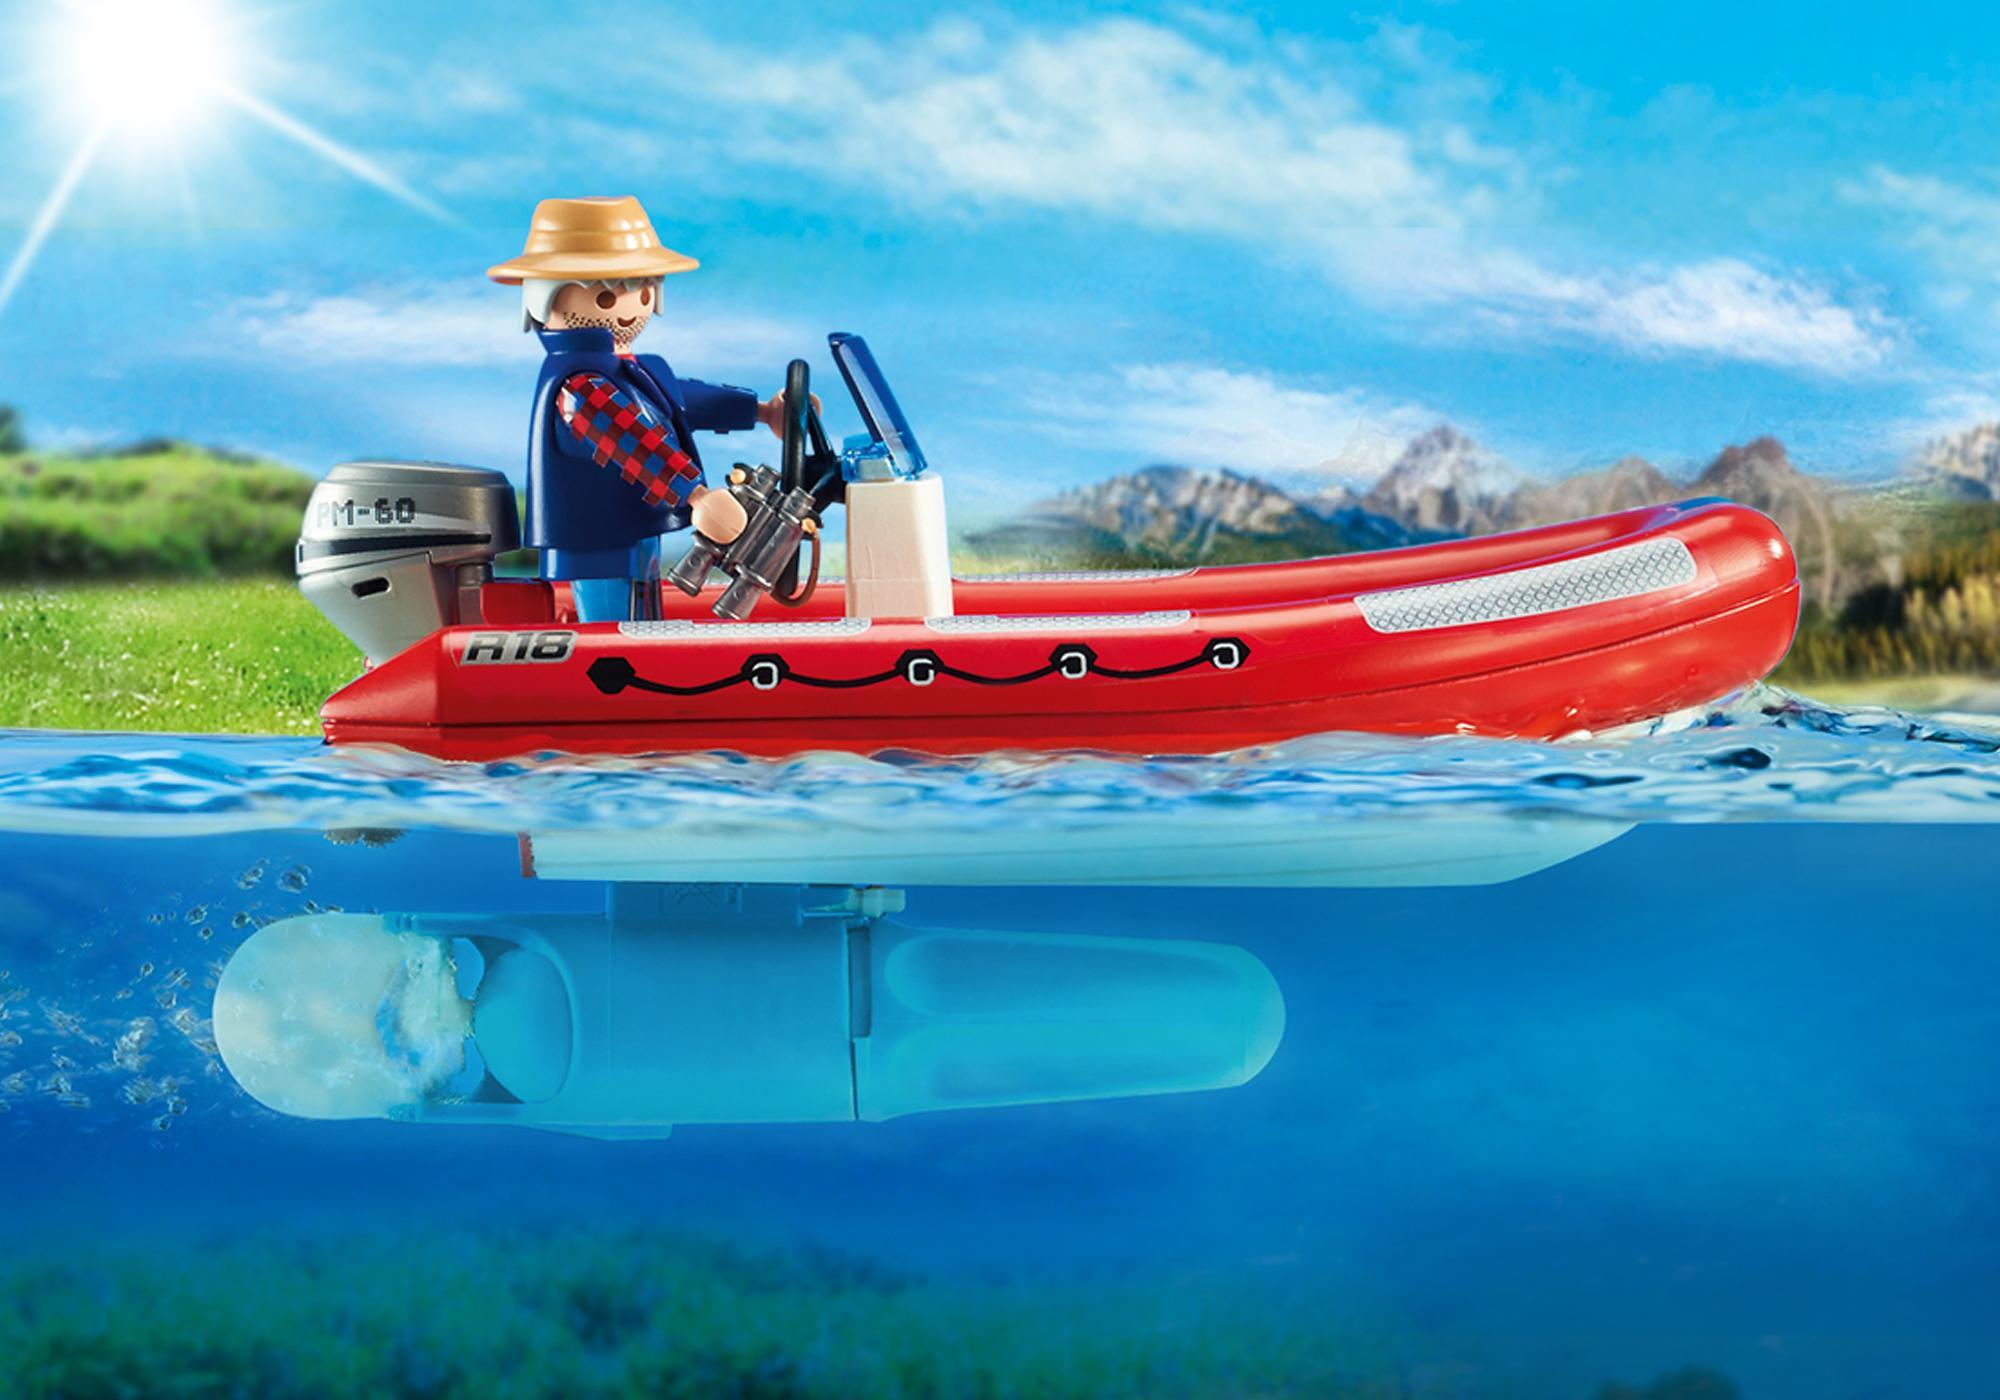 http://media.playmobil.com/i/playmobil/5559_product_extra1/Rubberboot met stropers